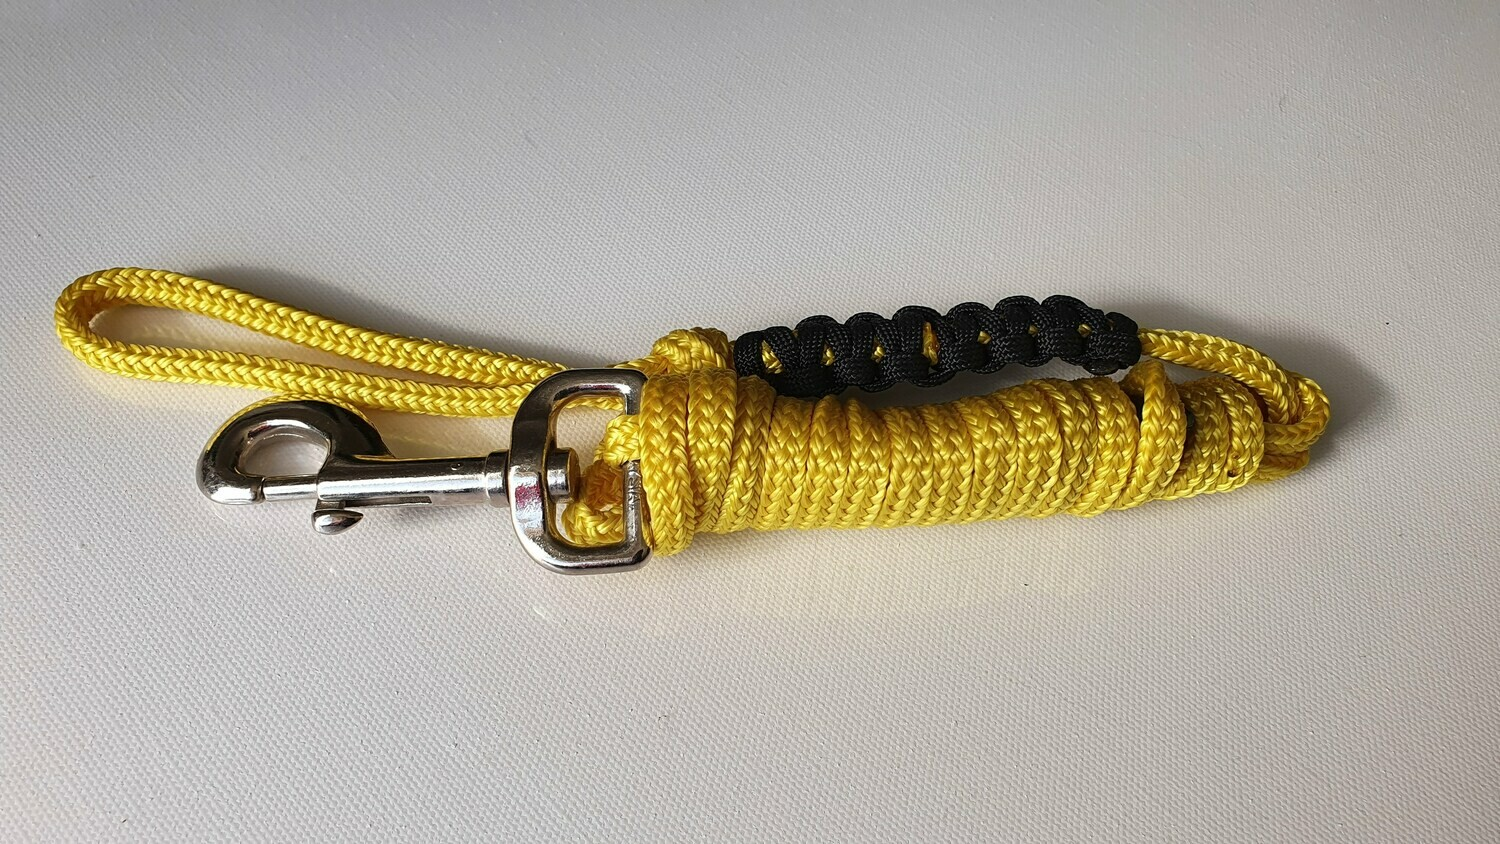 1.82m Yellow/Black Rope Dog Lead